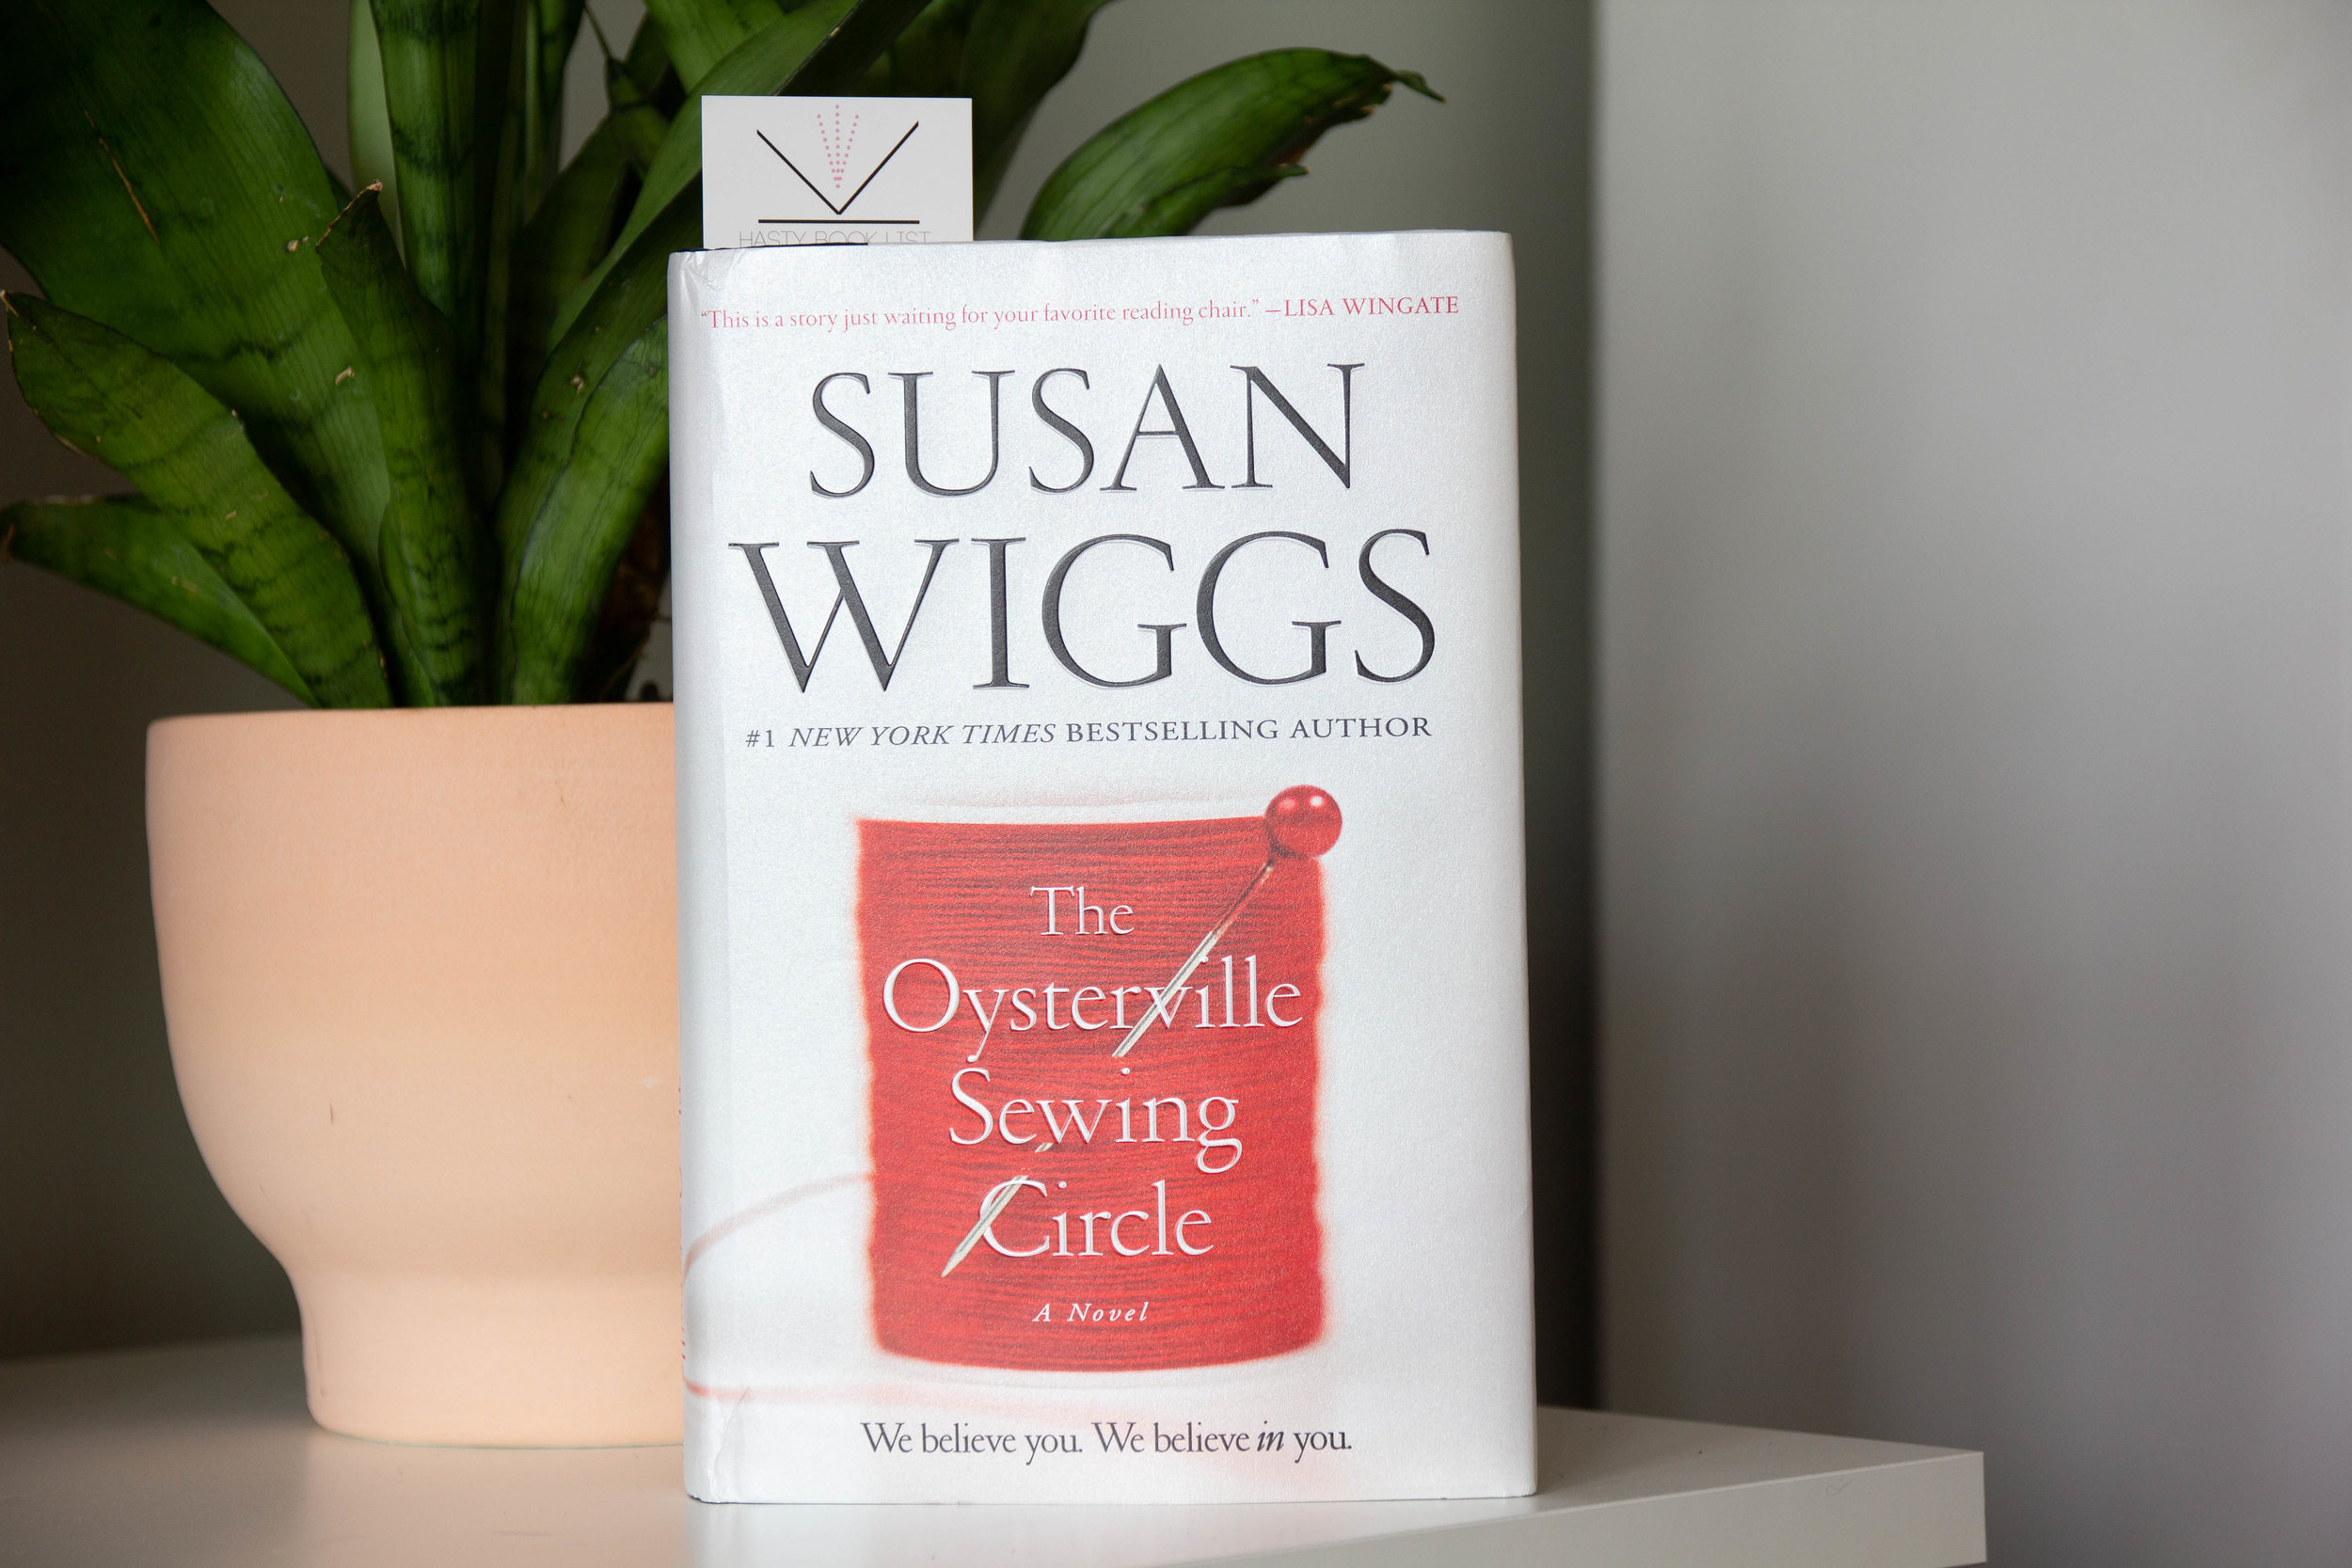 The Oysterville Sewing Circle by Susan Wiggs - The #1 New York Times bestselling author brings us her most ambitious and provocative work yet—a searing and timely novel that explores the most volatile issue of our time—domestic violence.